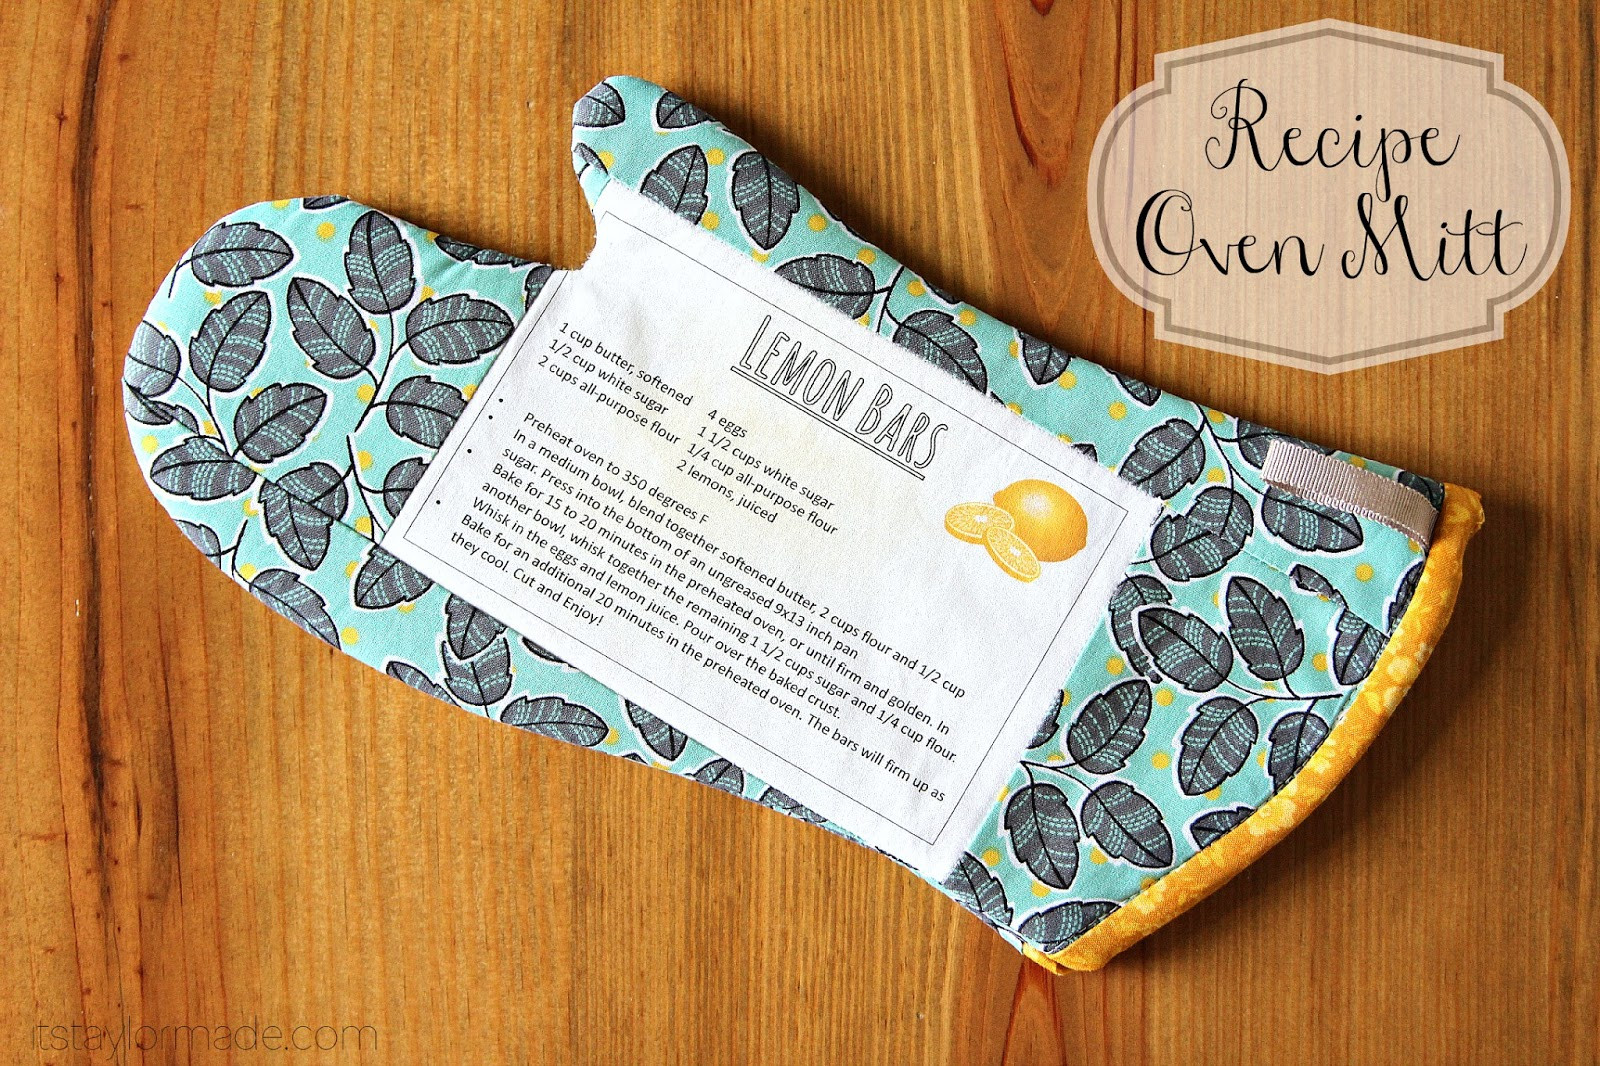 Best ideas about Mother'S Day Gift Ideas For Church . Save or Pin Handmade Mother s Day Recipe Oven Mitt TaylorMade Now.